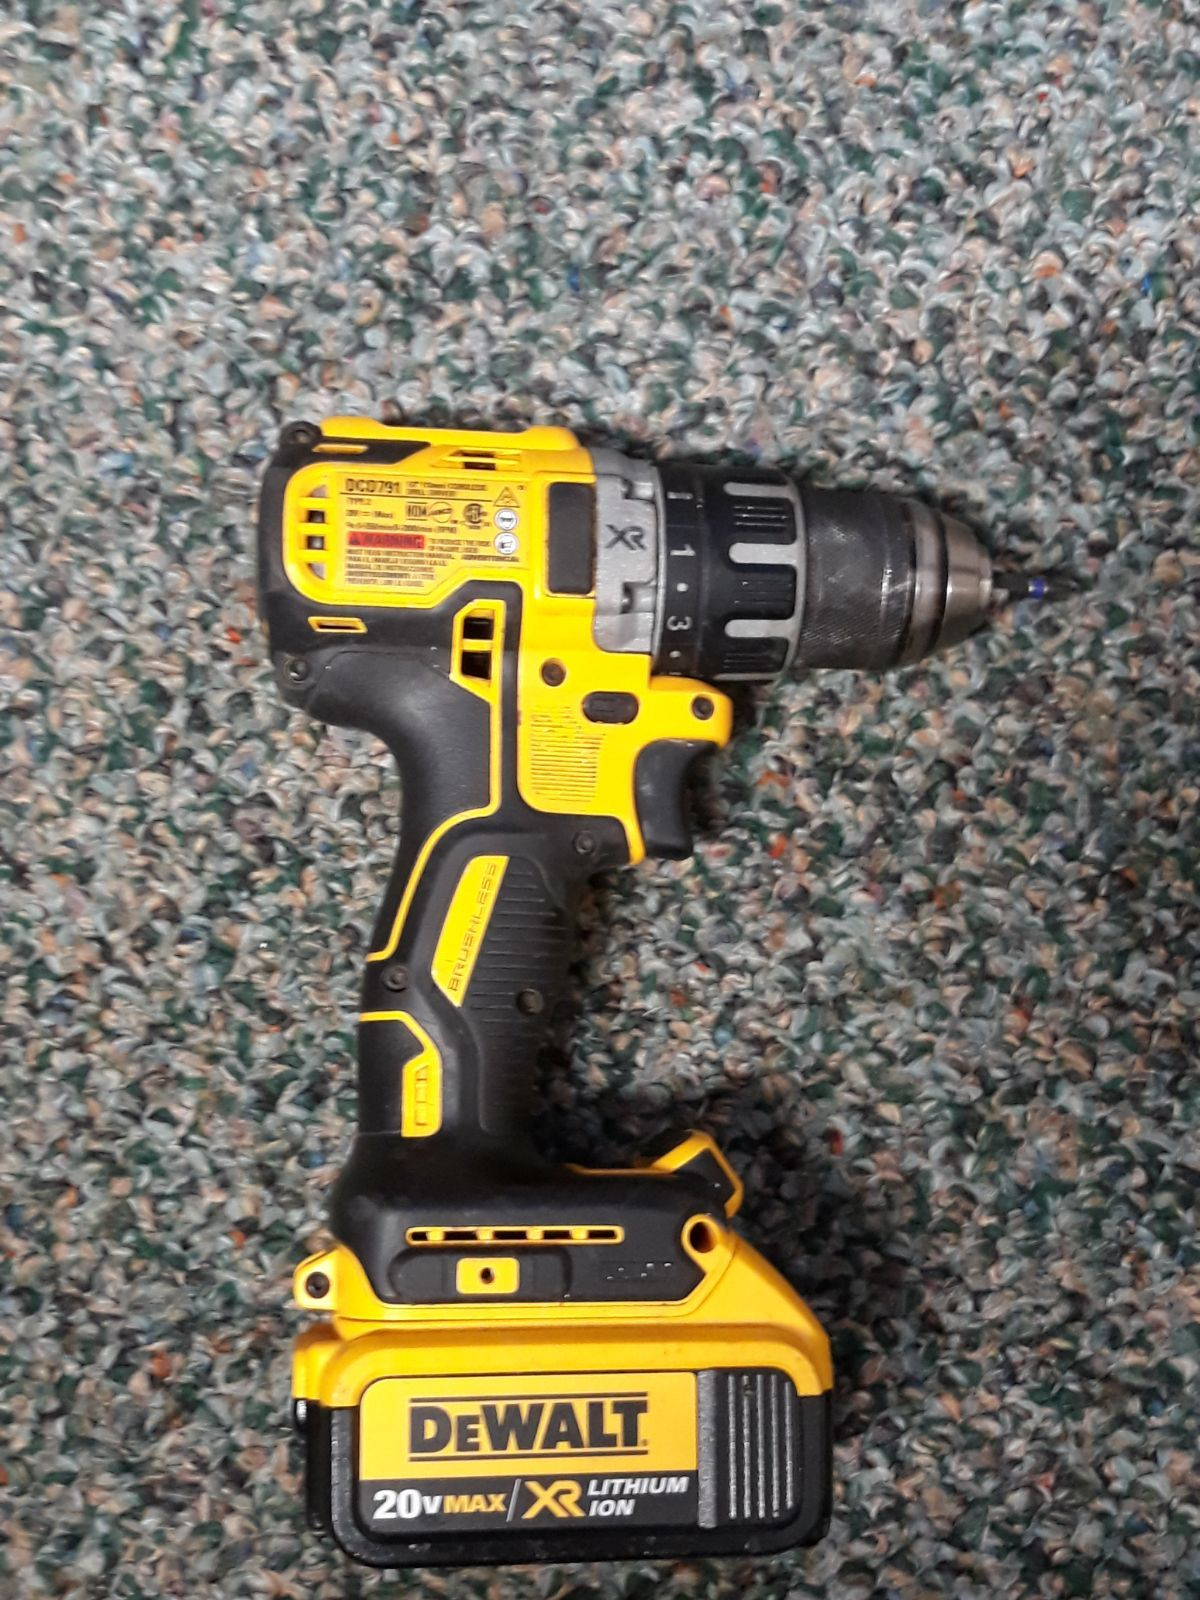 Dcd791 20v Max Xr Li Ion Brushless Compact Drill Driver With 20v Li Ion Dcb204 Battery With 4 0 Amp Hours Drill Functions Pro Drill Dewalt Compact Drill